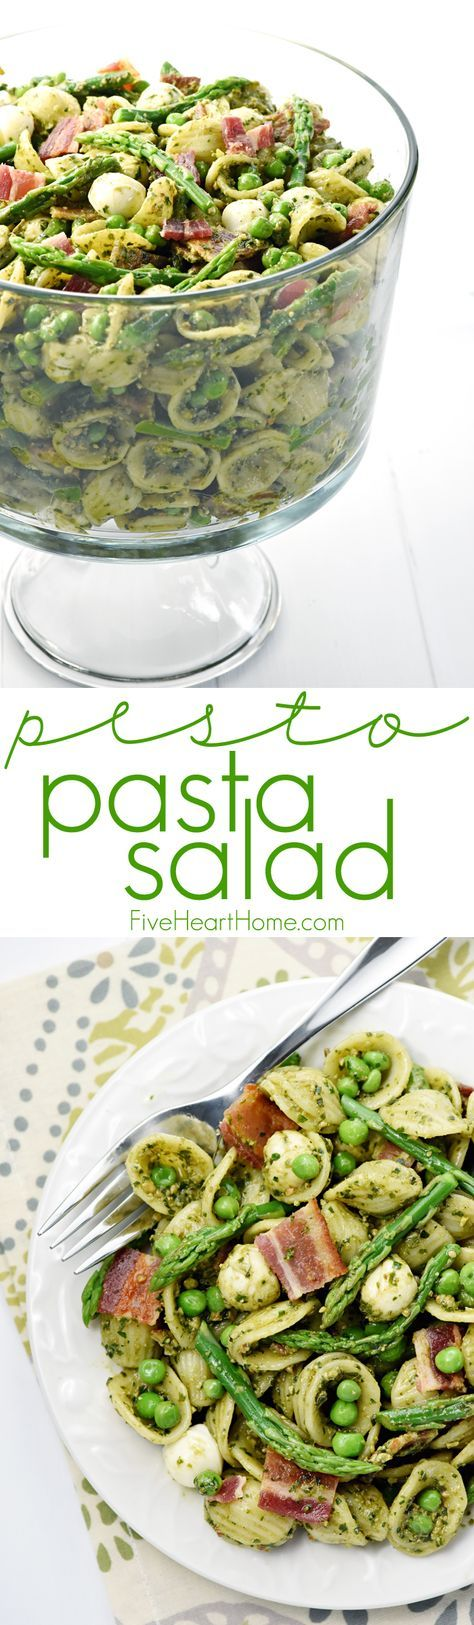 Pesto Pasta Salad ~ studded with bright green asparagus, sweet peas, decadent bacon, and fresh pearls of mozzarella, this pasta salad is a flavorful side dish or light dinner, perfect for spring and summer celebrations!   FiveHeartHome.com